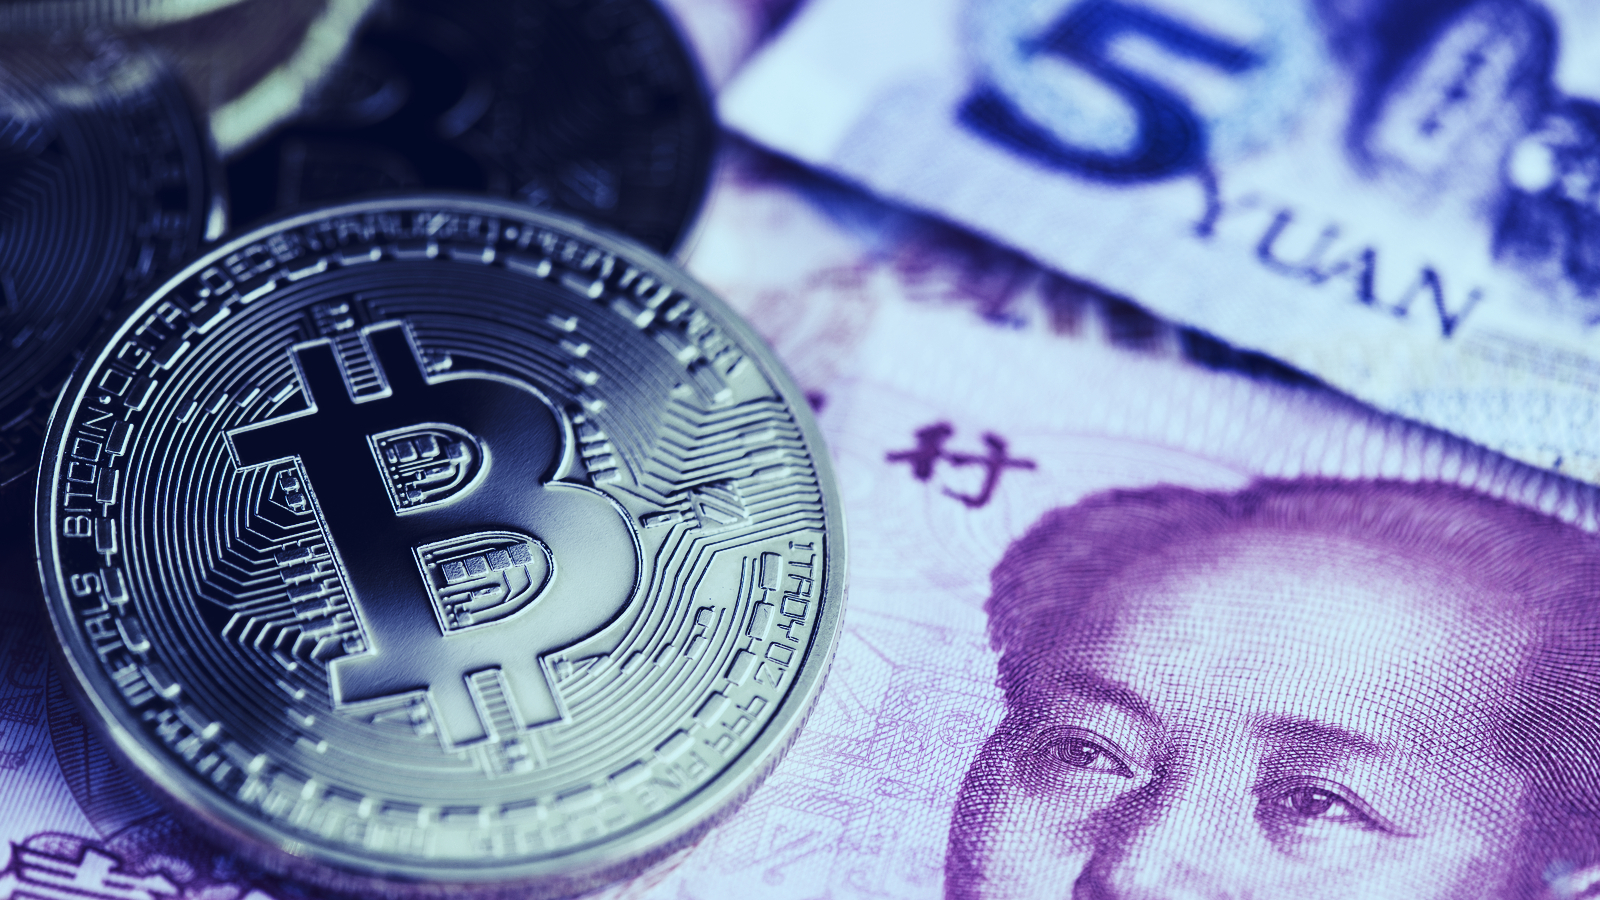 China Vows To Continue Cracking Down On Crypto 'Hype'